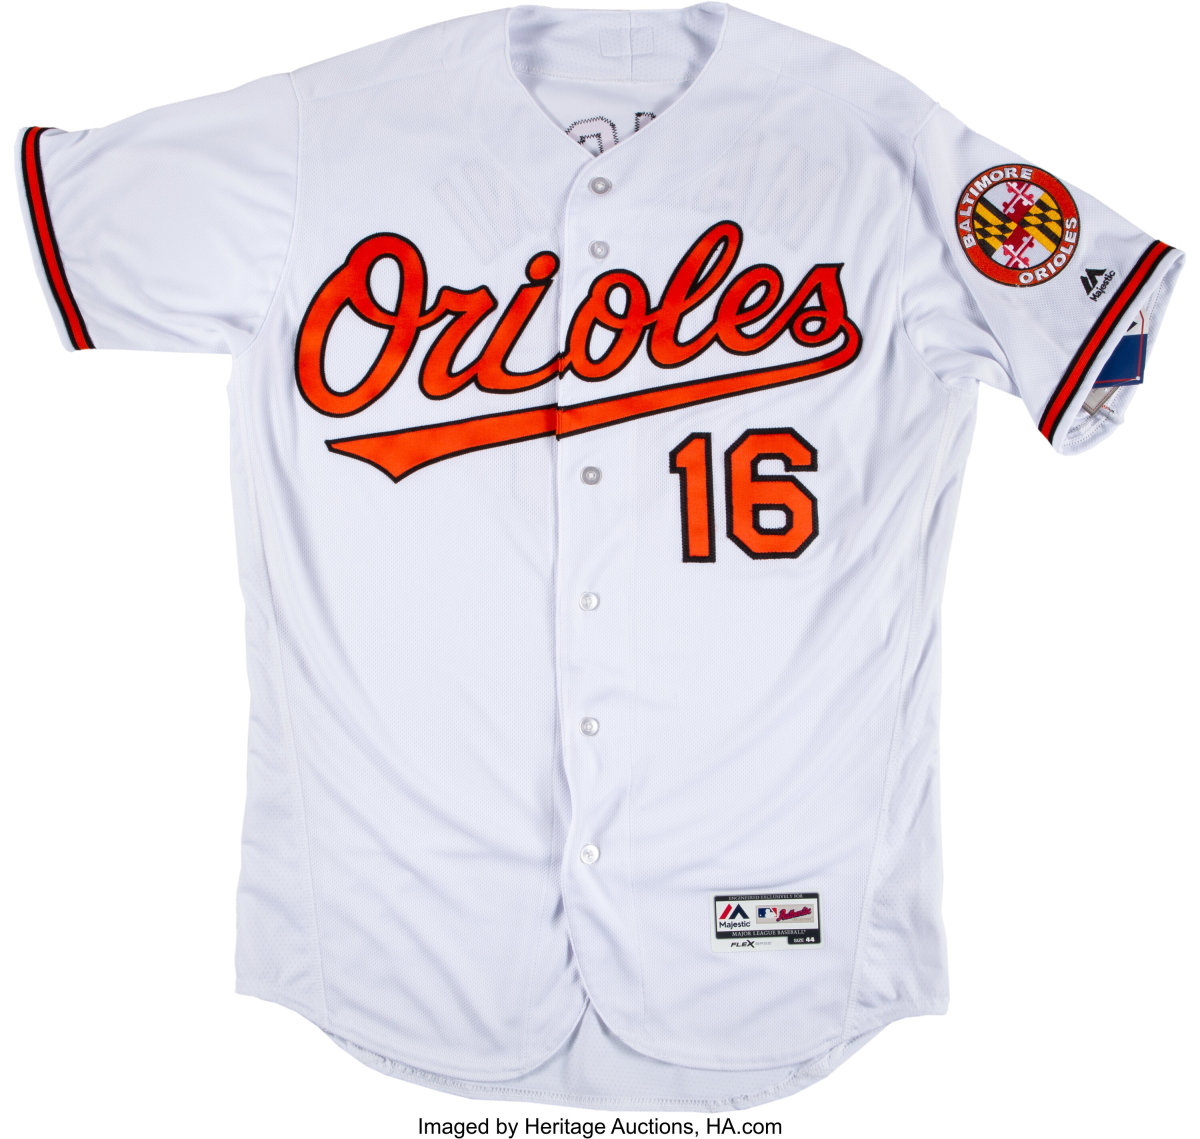 Trey Mancini jersey up for bid in Heritage's Bid 2 End Cancer Charity Auction.